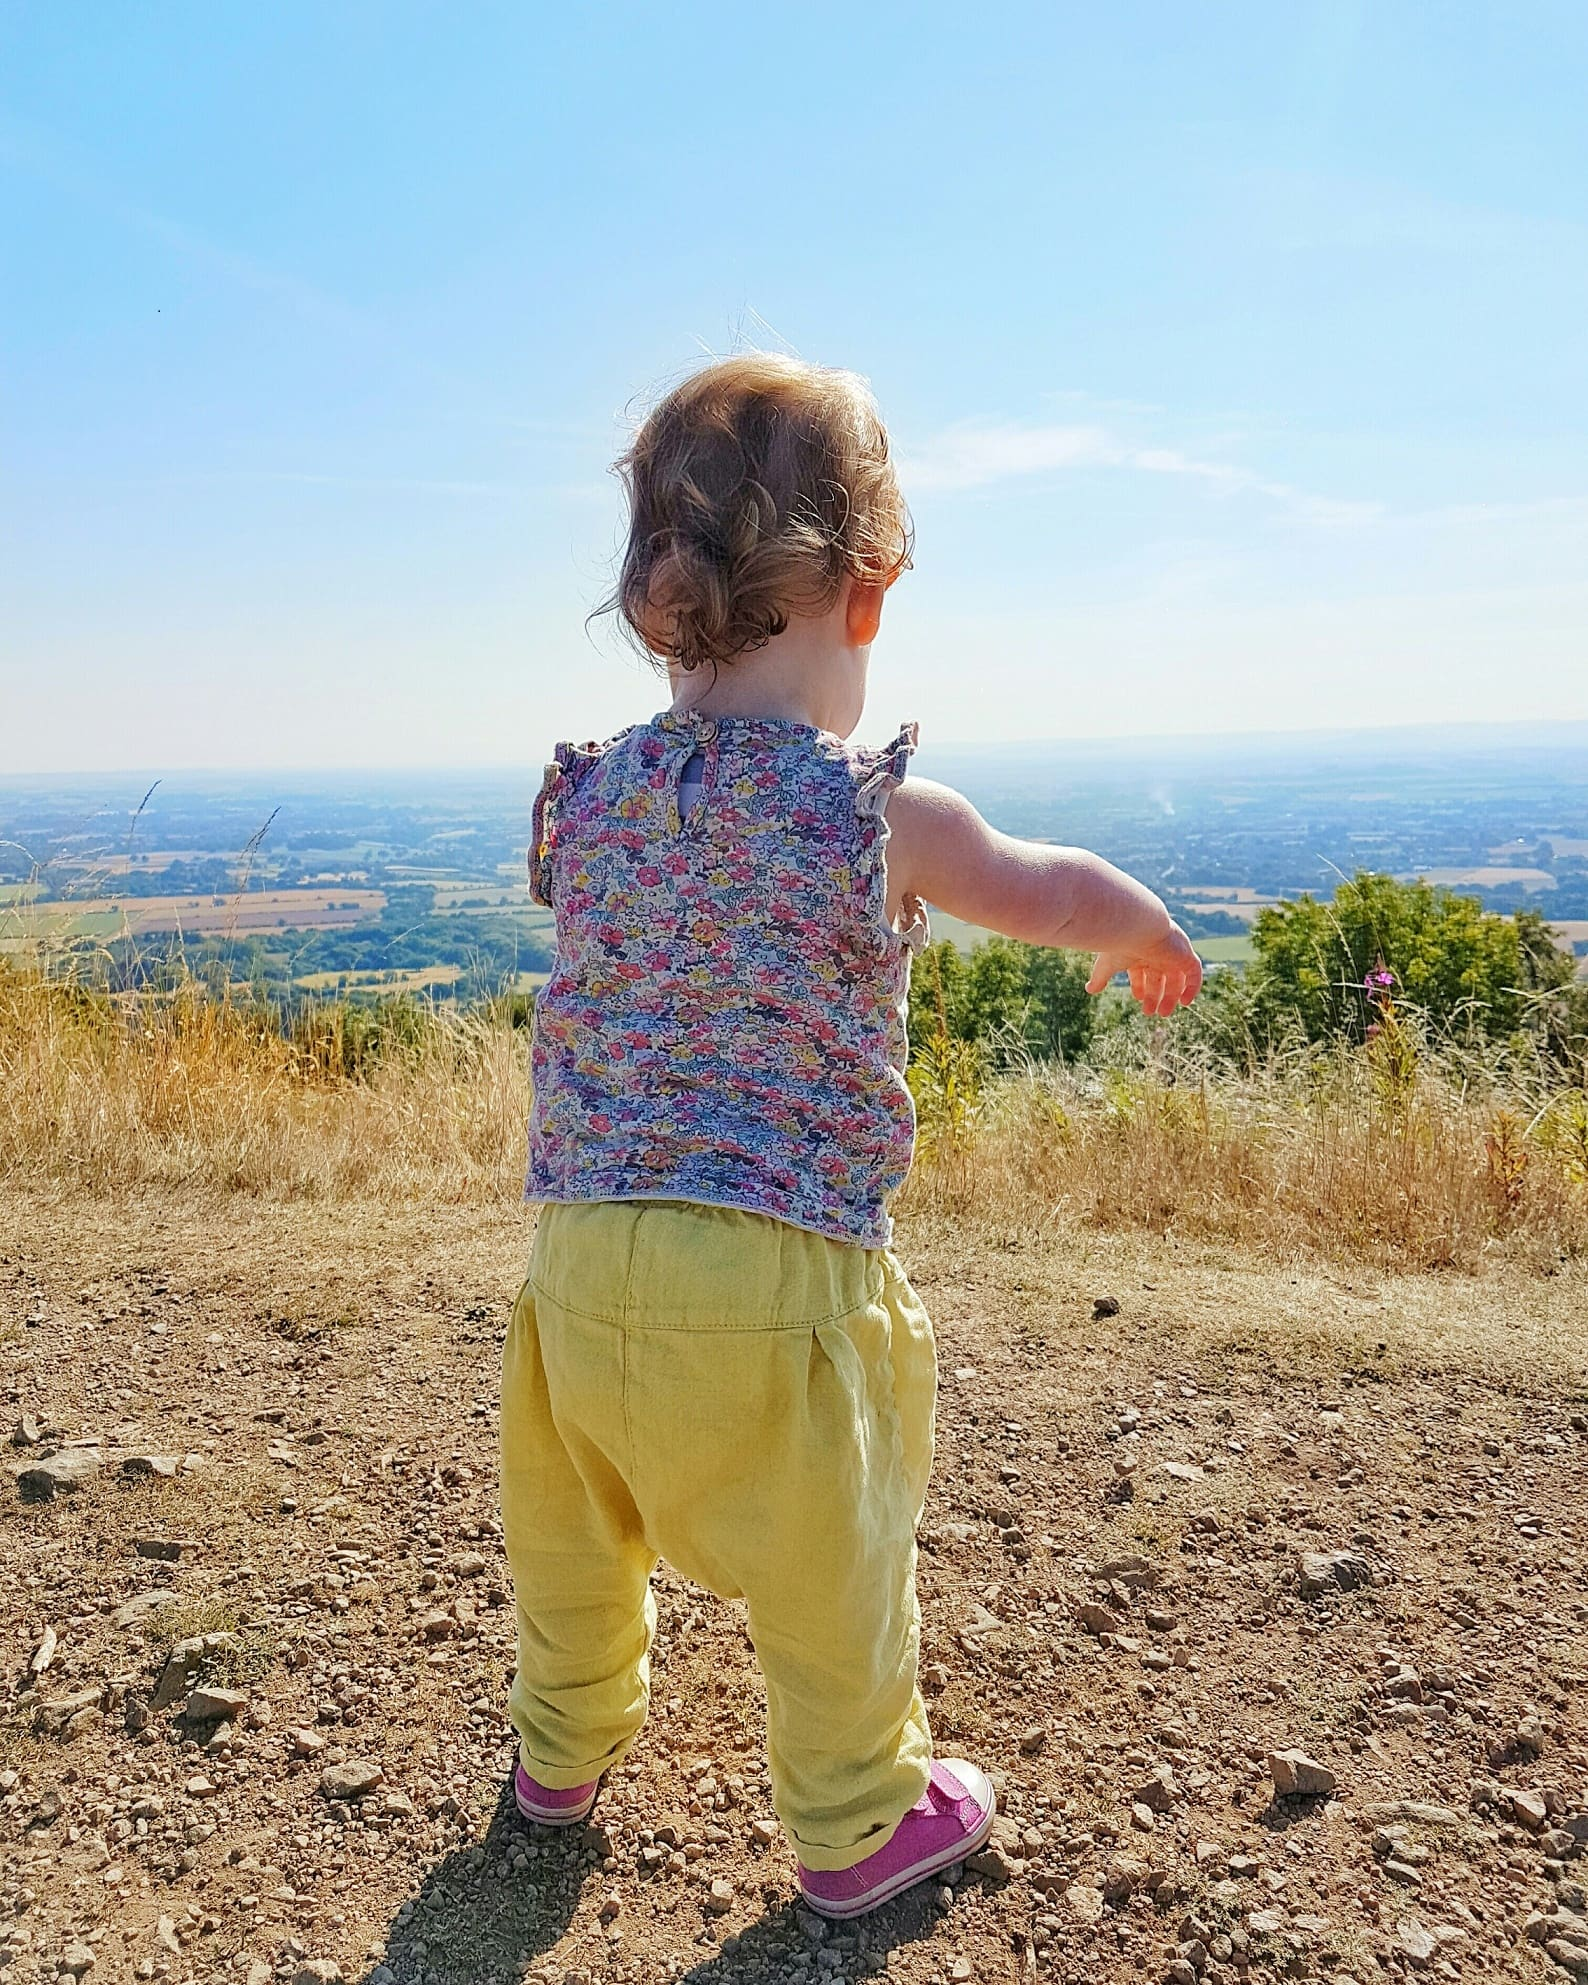 Girl looks out at view from Malvern hills by Someone's Mum